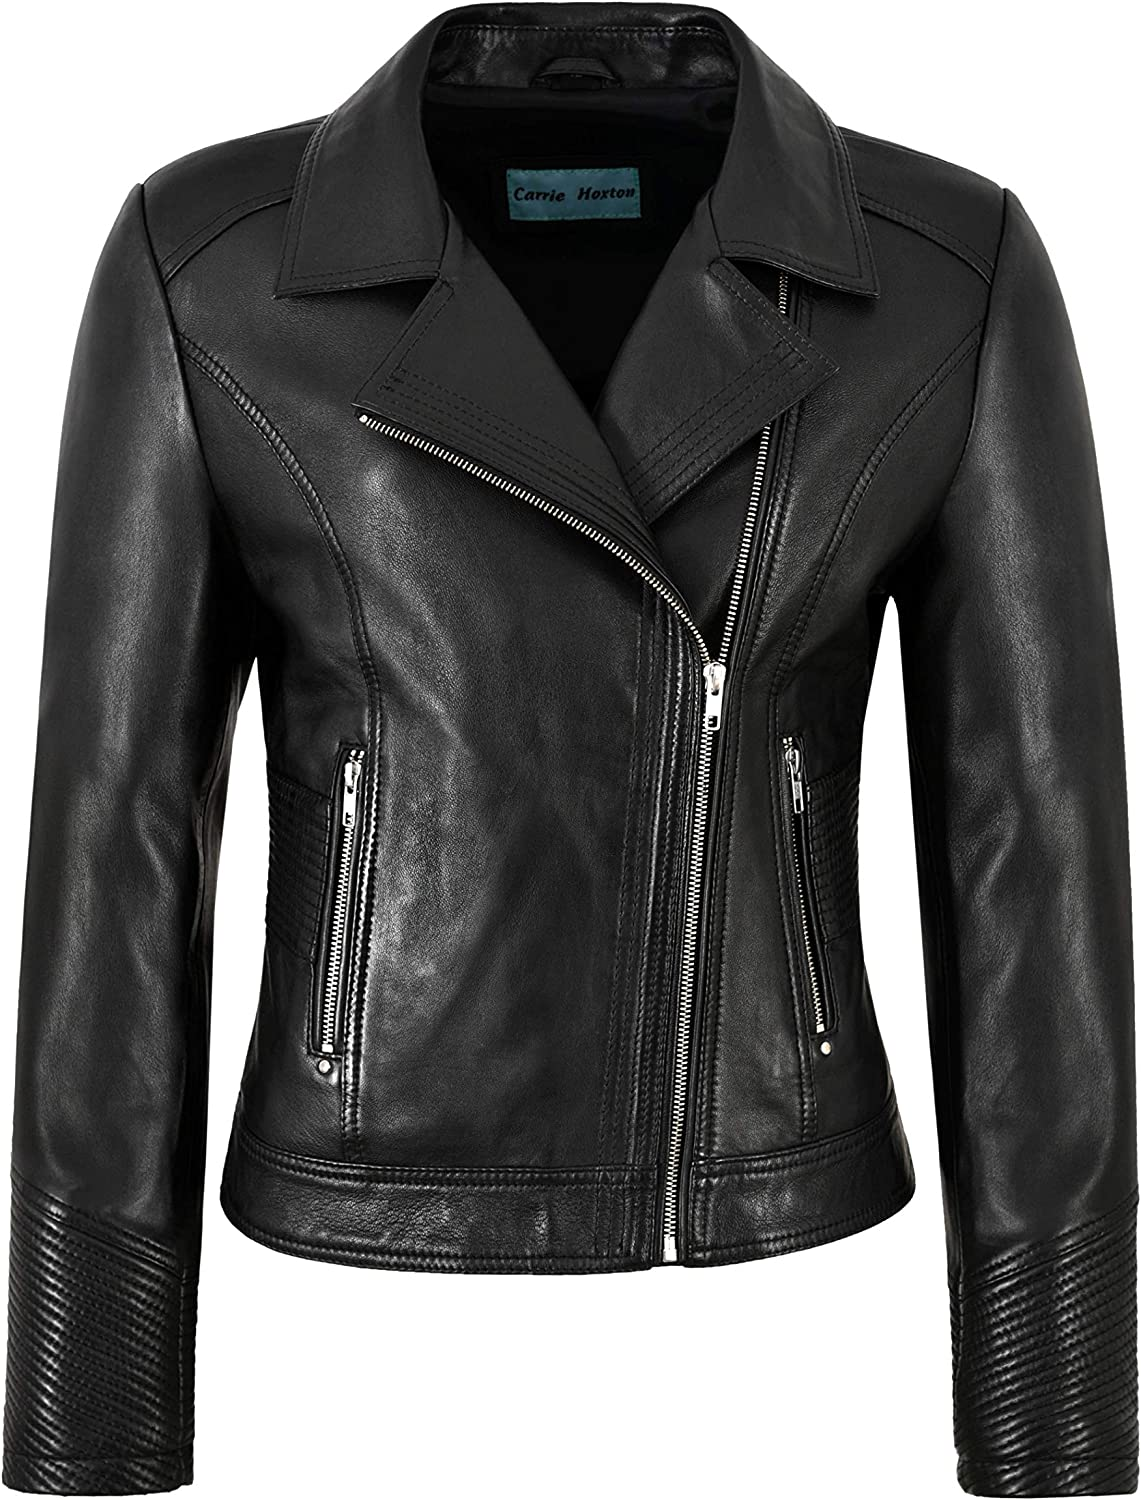 Carrie CH Hoxton Felpa Ladies Biker Style Jacket Black Soft Lambskin Quilted Sleeves Fashion 2225